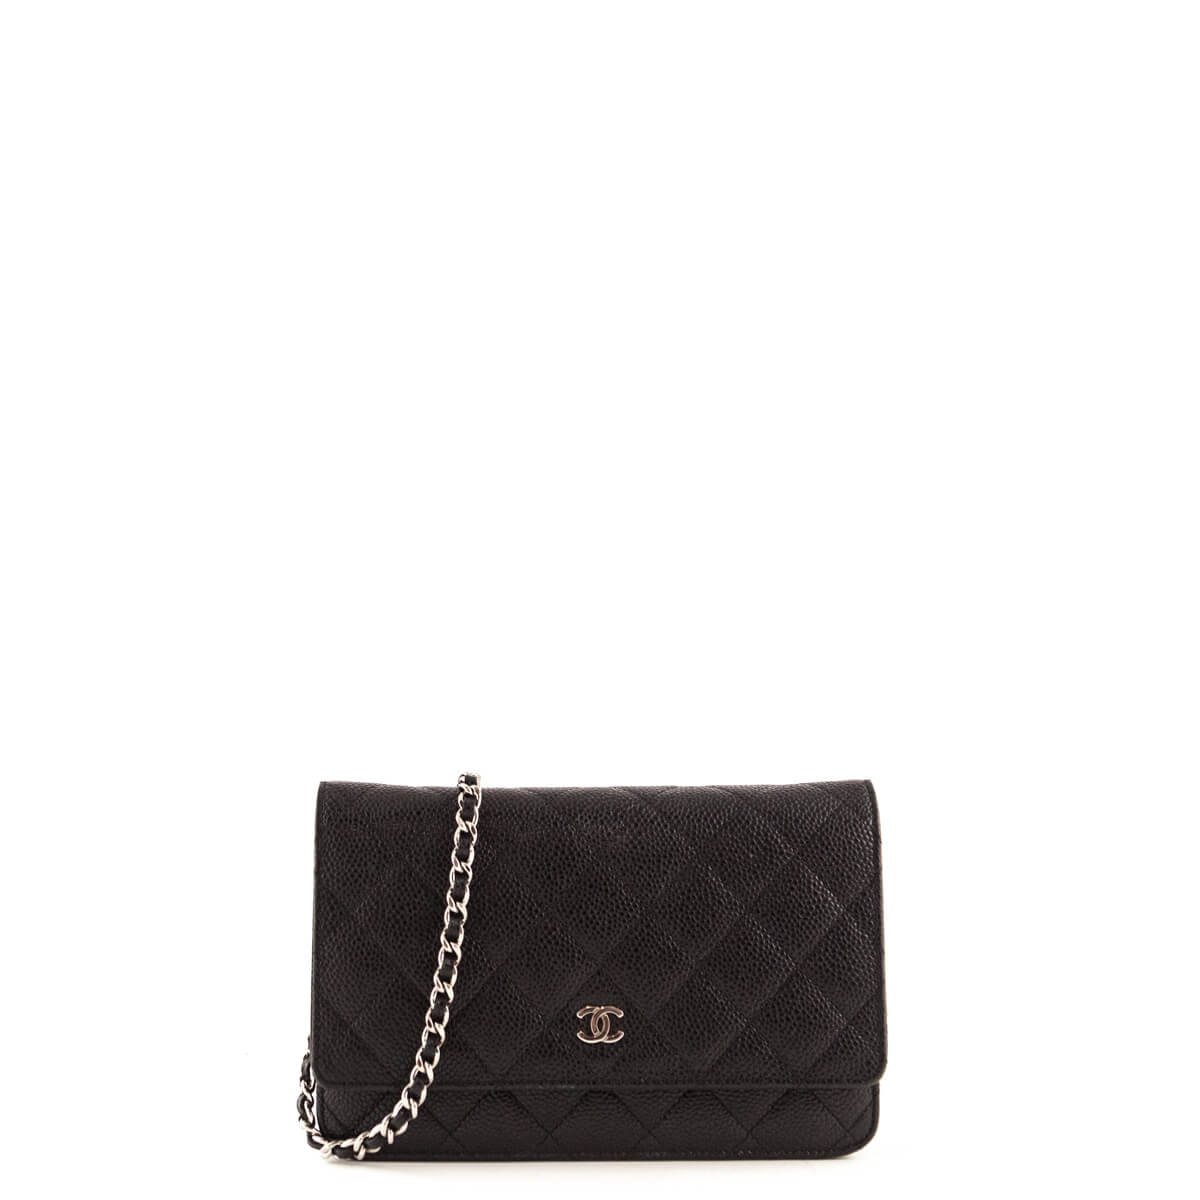 75263c21ab8f4d Chanel Black Caviar Wallet on Chain SHW - LOVE that BAG - Preowned Authentic  Designer Handbags ...